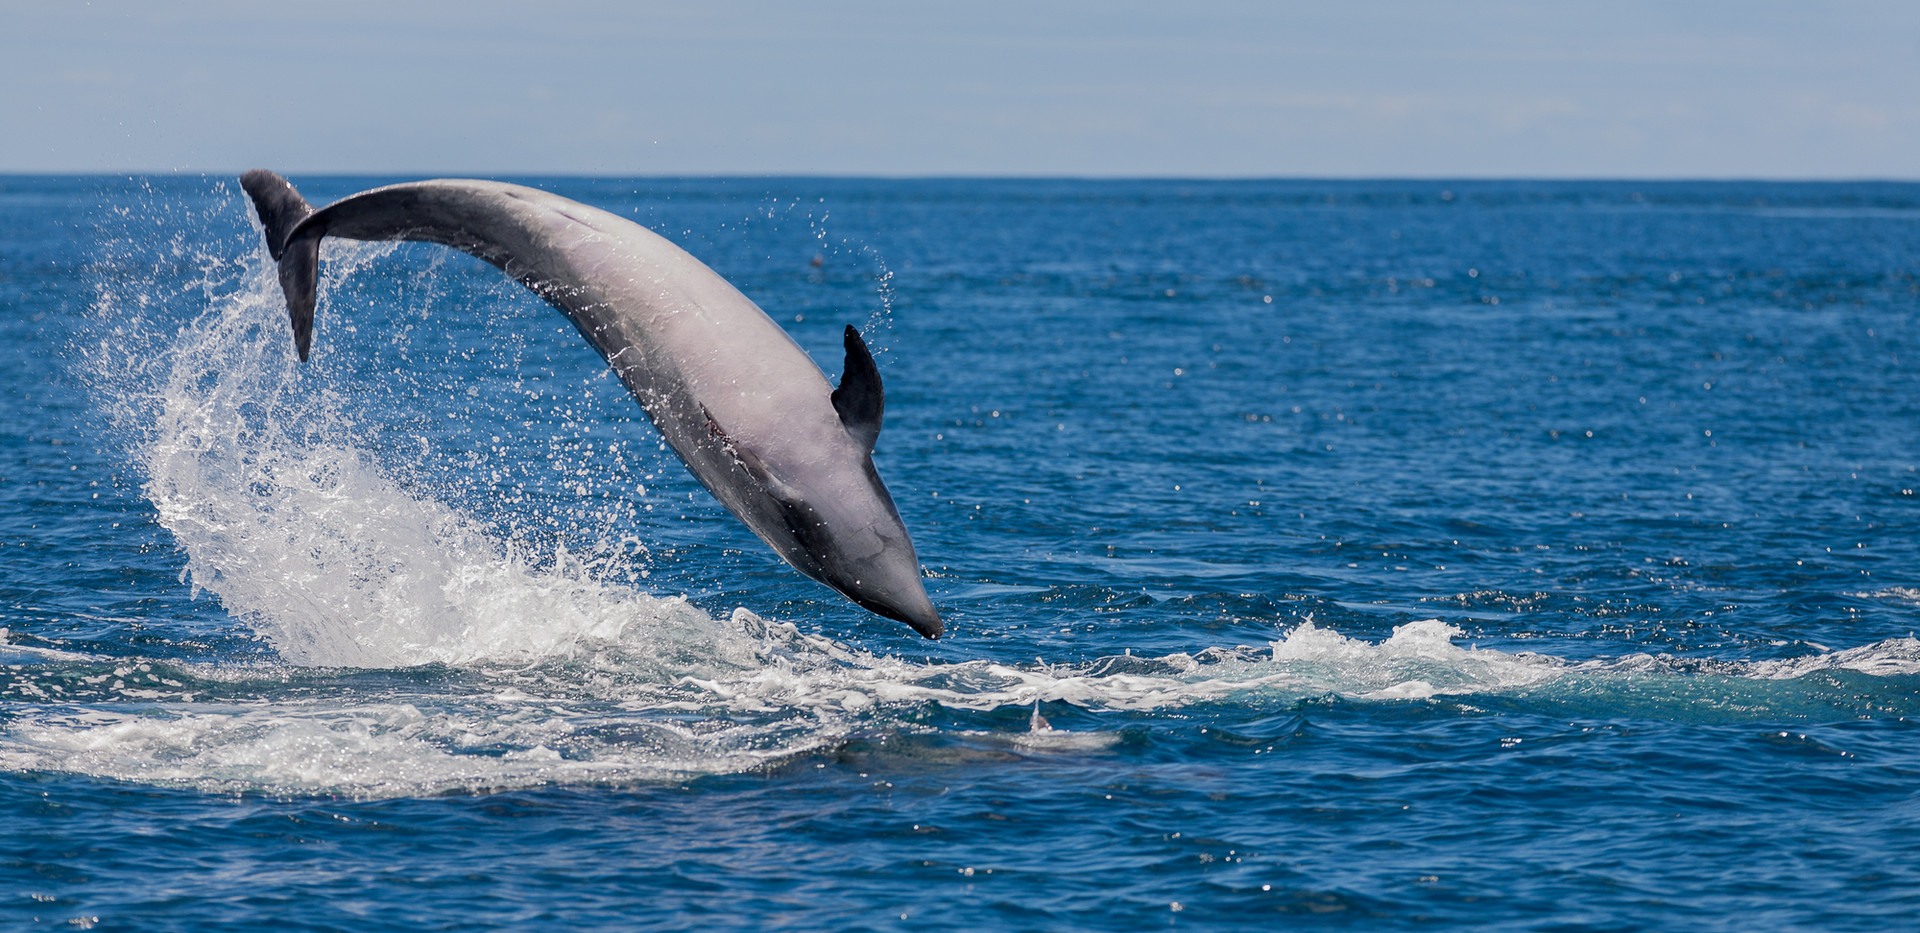 Whale watching dolphin3.jpg